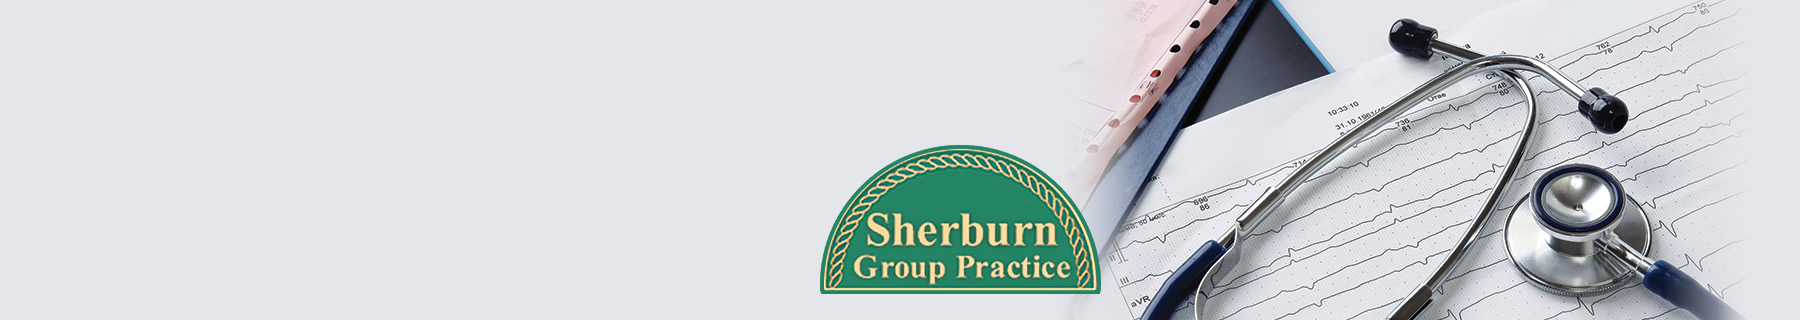 Surgery Connect provided Sherburn Group Practice with an up-to-date adaptable telephone system including call queueing, queue busting and call recording